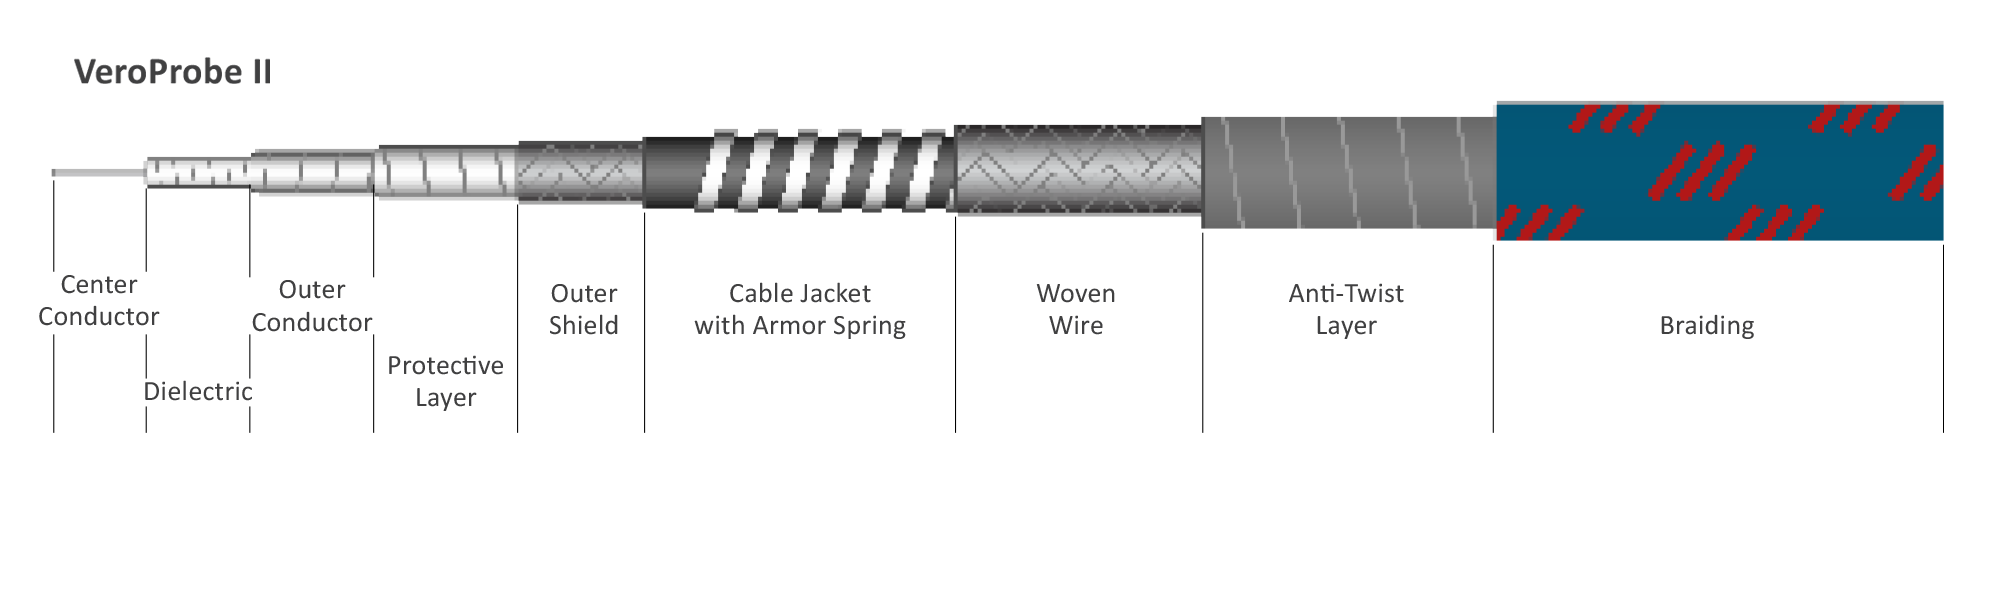 Continuum Technologies - Vero RF Cable Series - veroPROBE II - Cable Structure